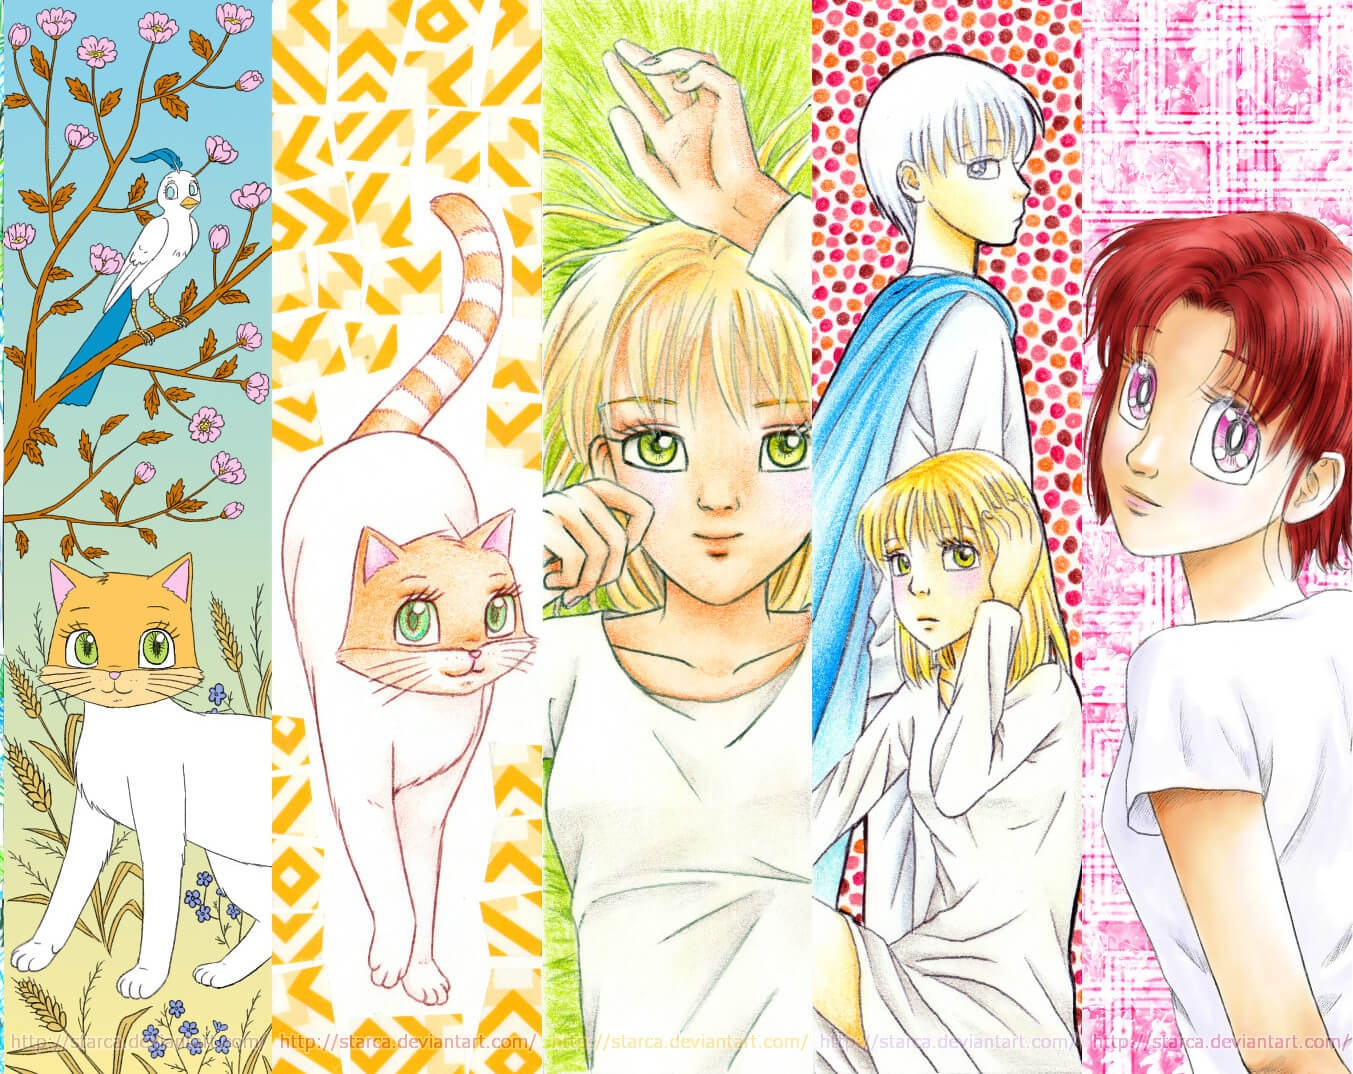 Cats And Girls Bookmarks   Free Printable Papercraft Templates - Anime Bookmarks Printable For Free